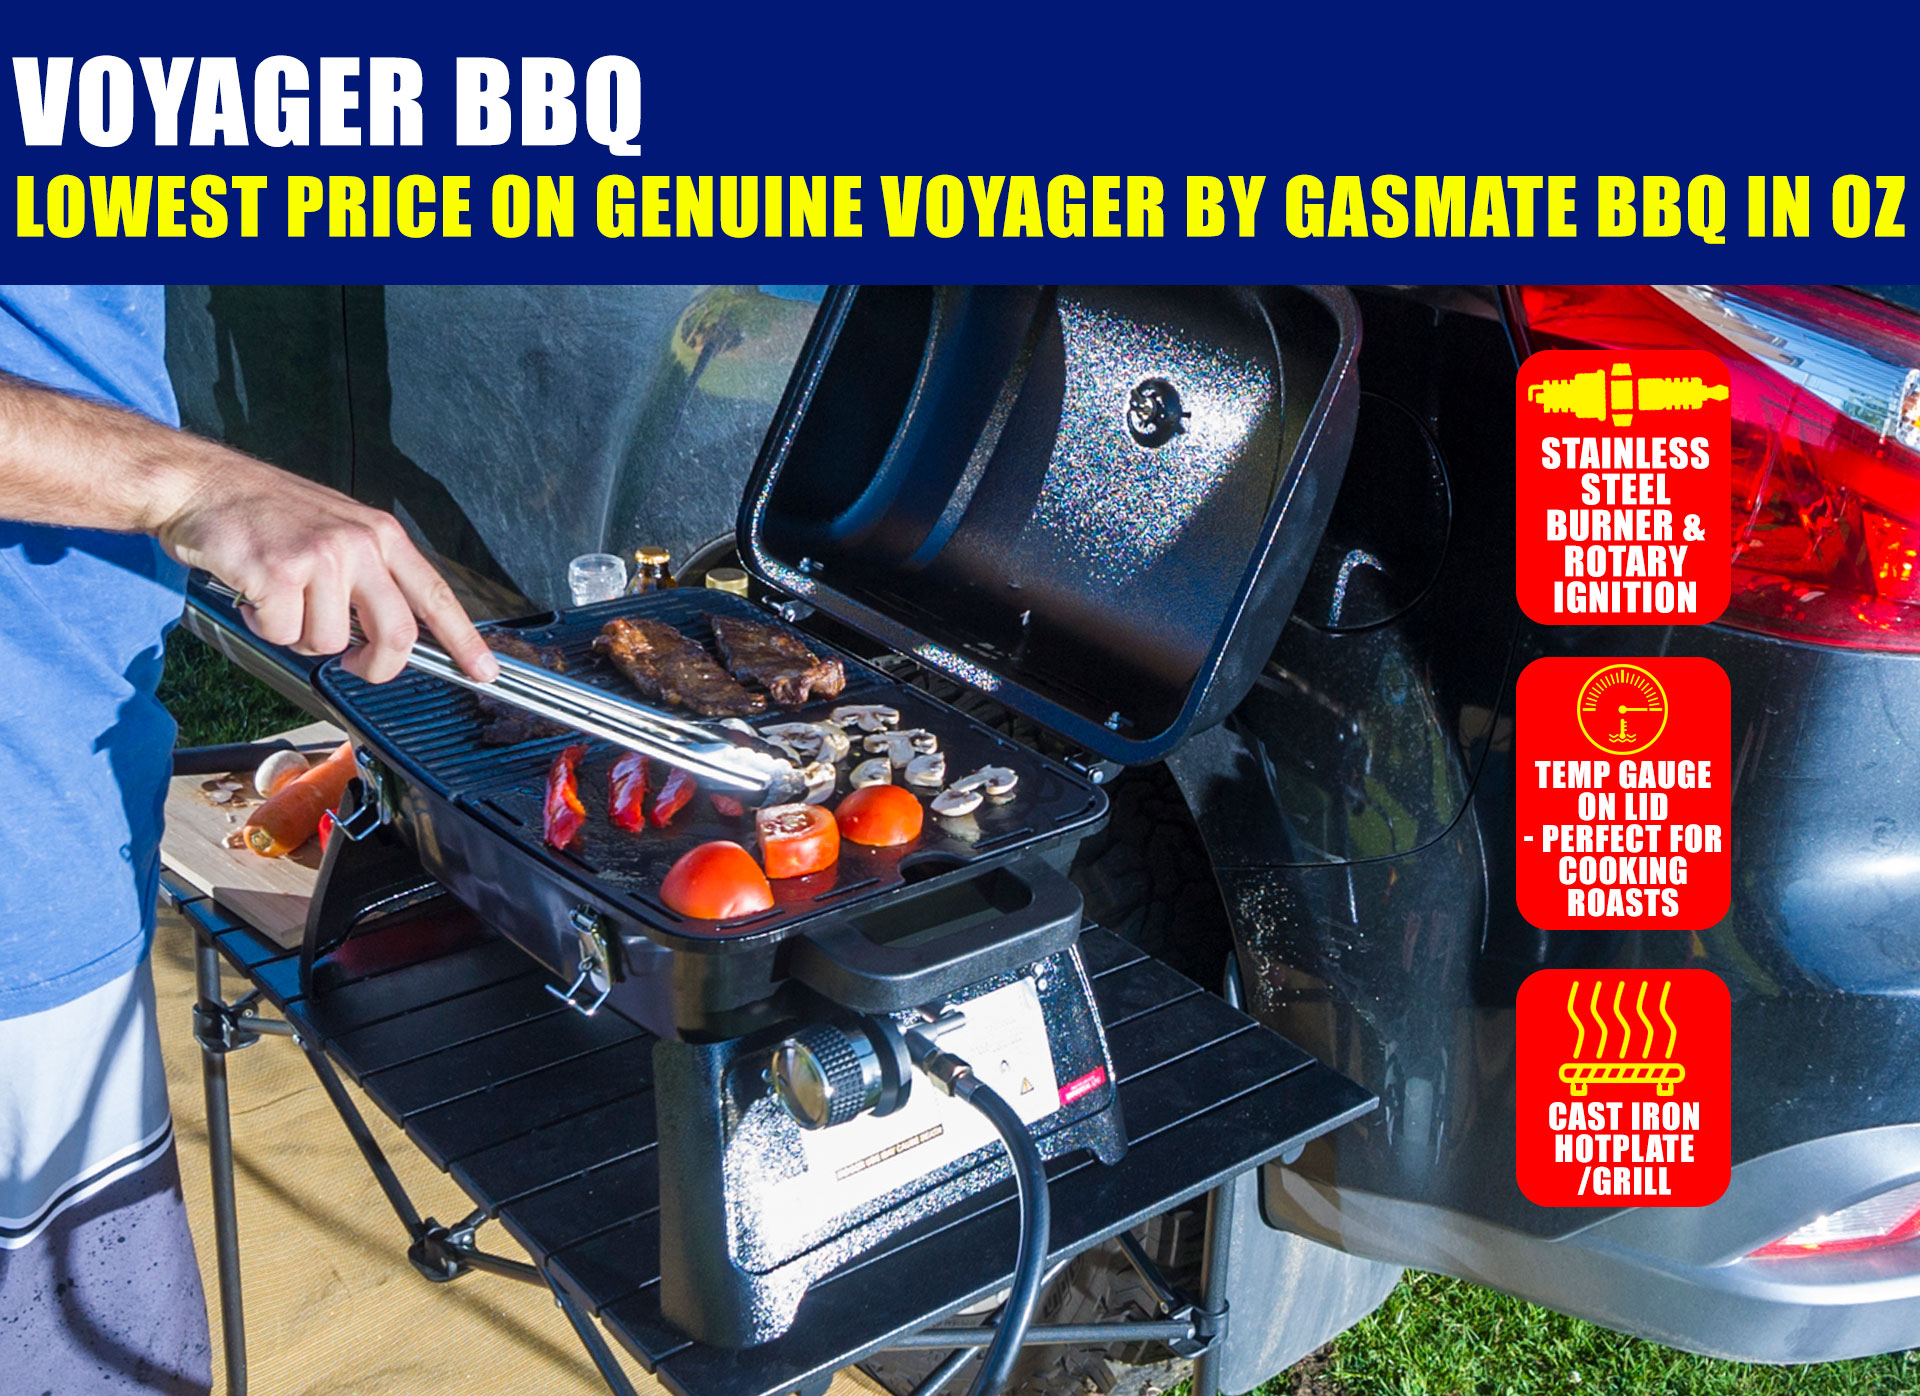 Gasmate Voyager Portable Gas Bbq Review 4wd supacentre: hi, exclusive offer on a voyager bbq just